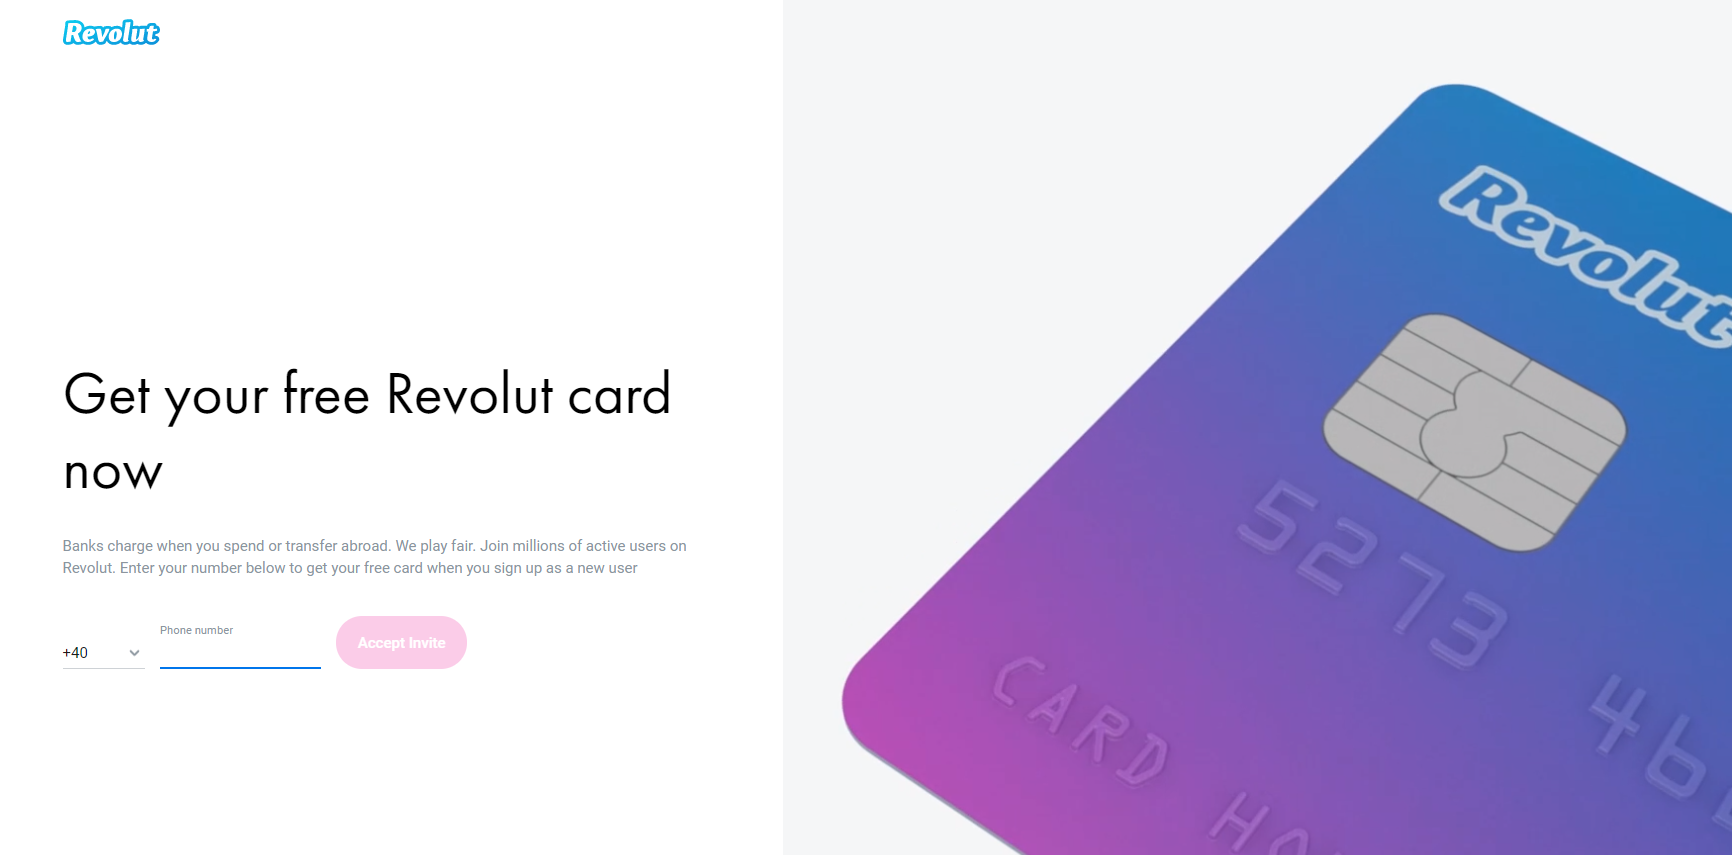 Sign up for free to your Revolut account. you can use notepad for downloading the app